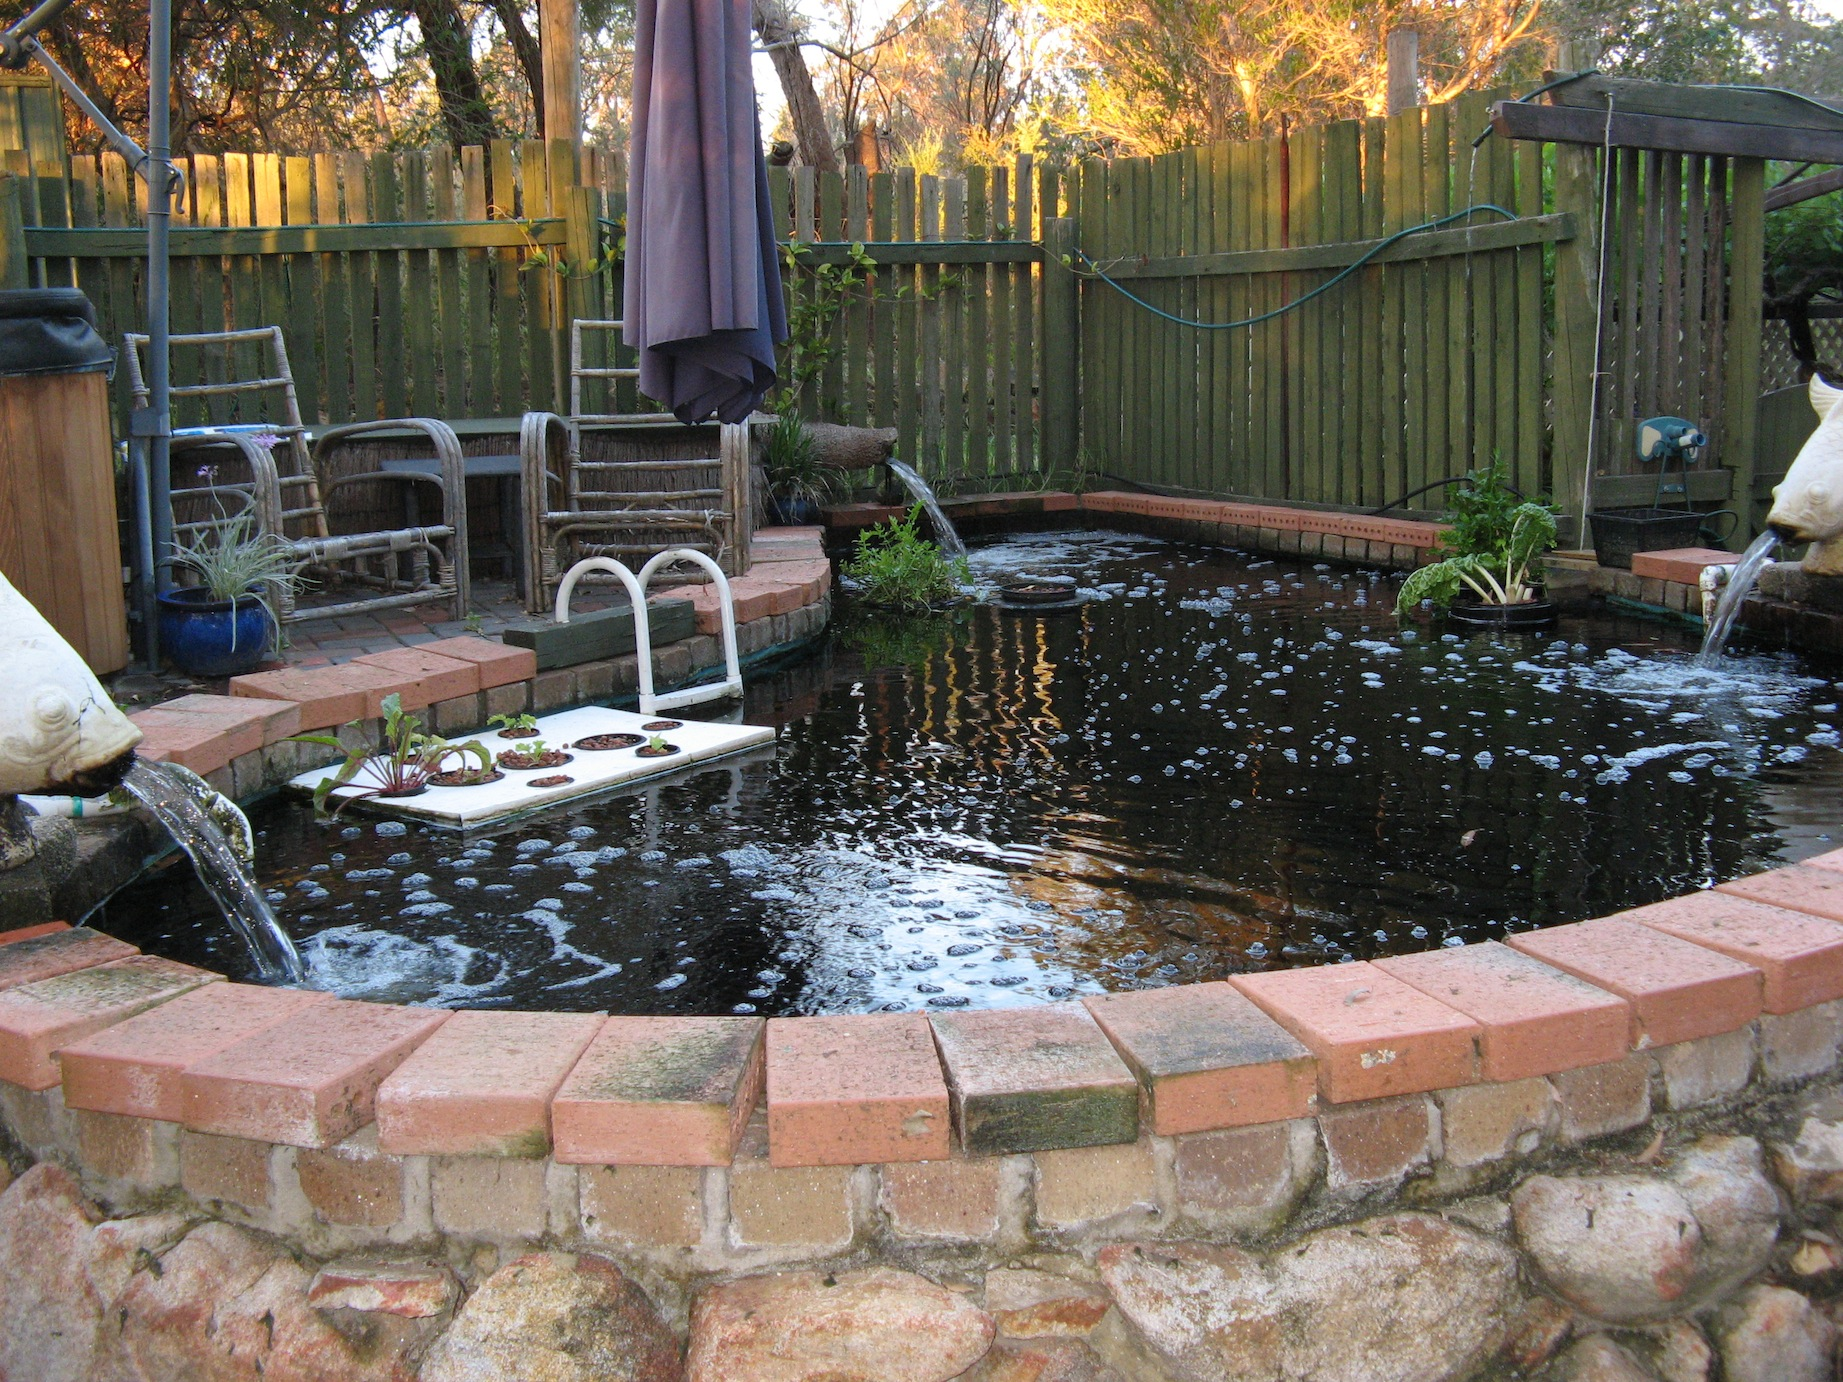 Swimming pool conversion mccarthy park for Swimming pool koi pond conversion